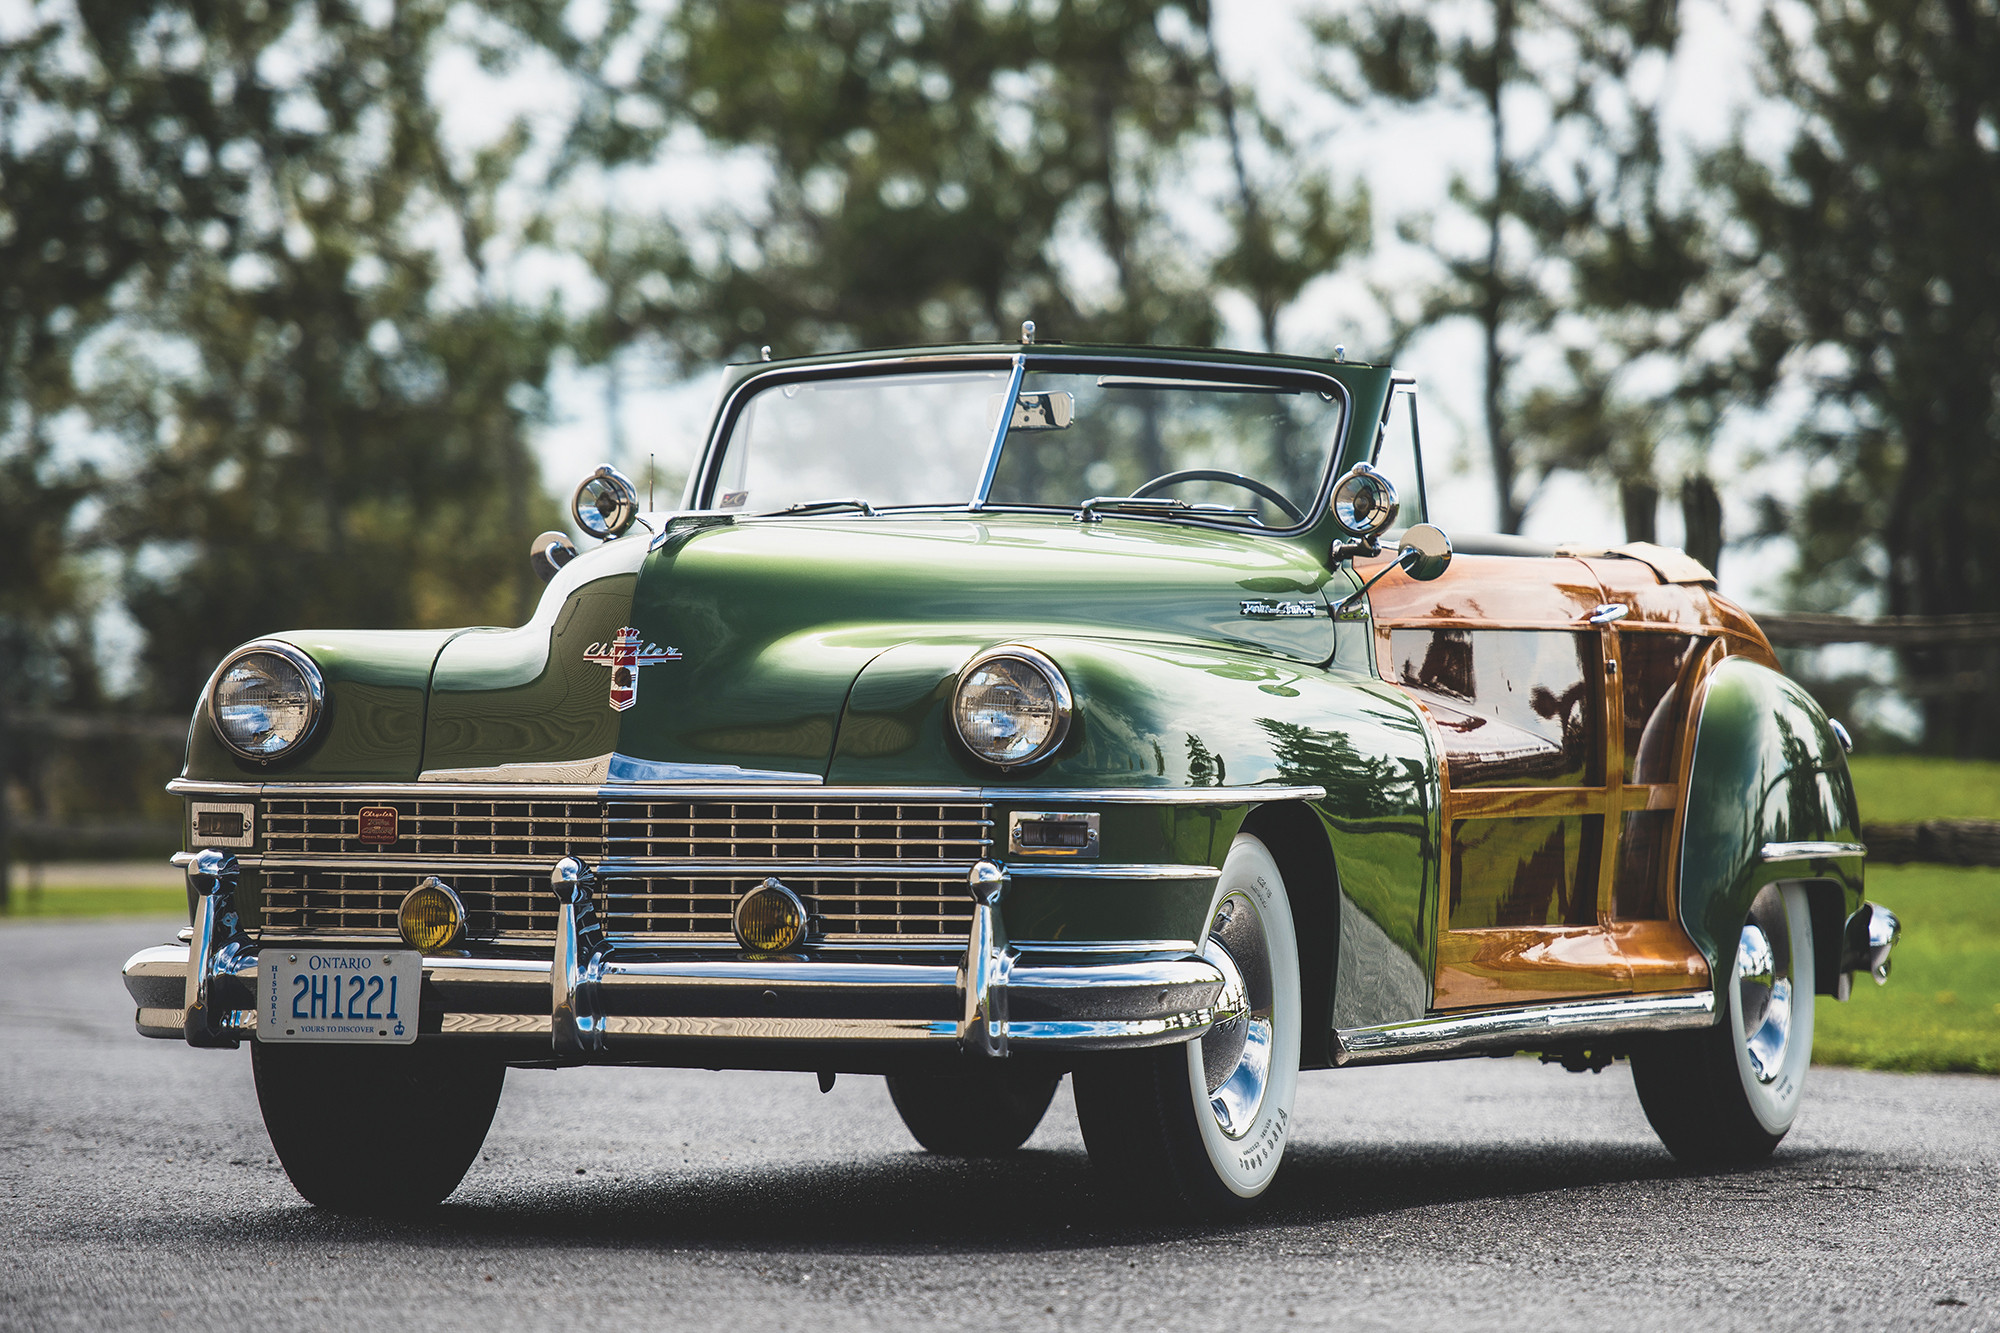 chrysler-town-and-country-convertible-1949-angle-front-woodgrain.jpeg